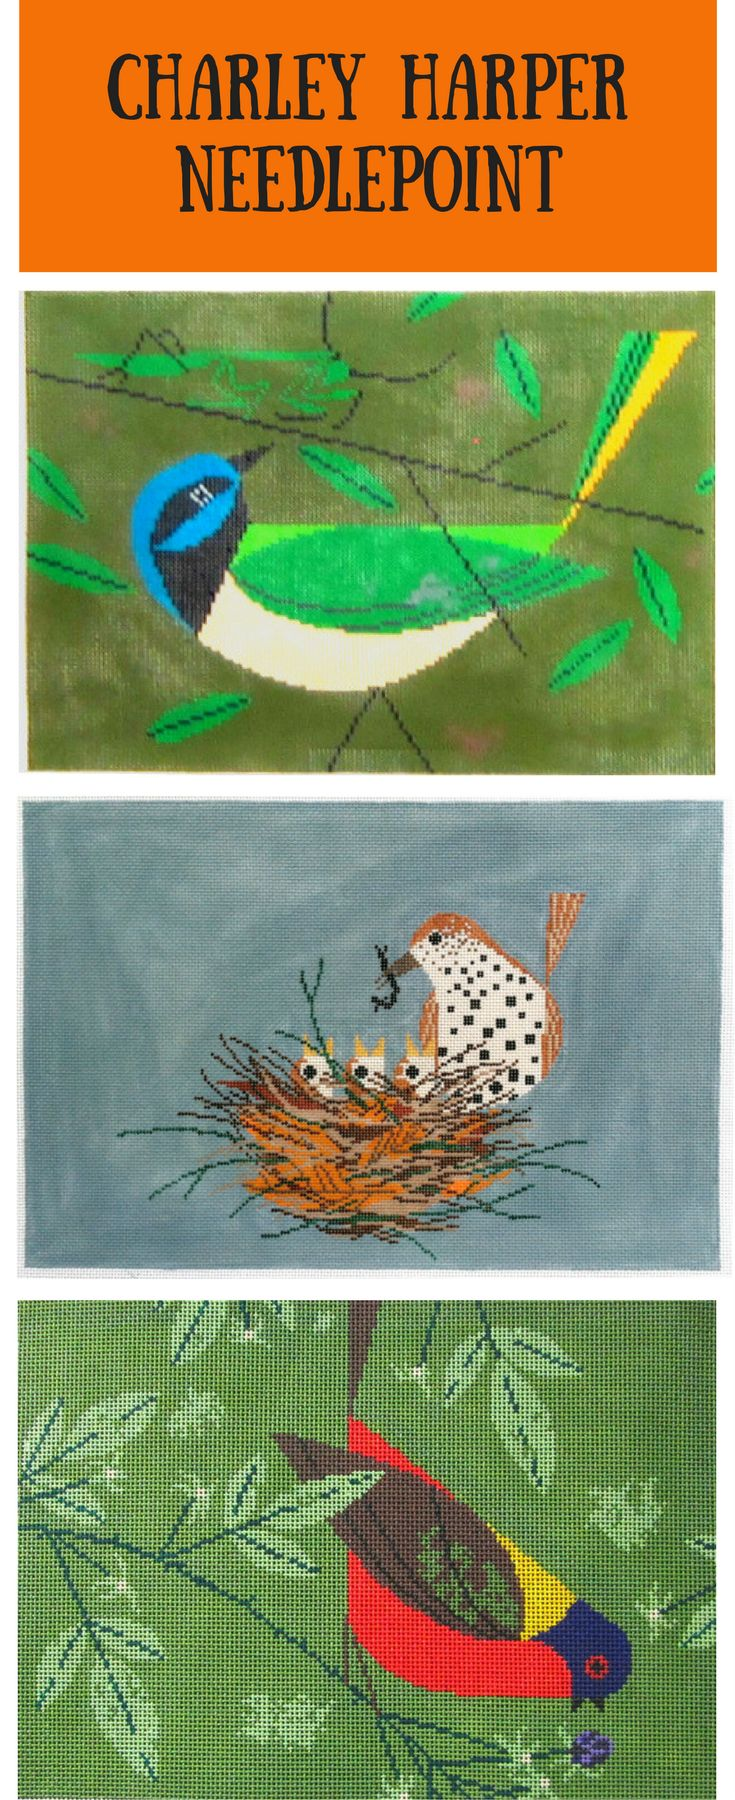 New Charley Harper needlepoint designs in stock. Stitch an easy contemporary needlework project today.